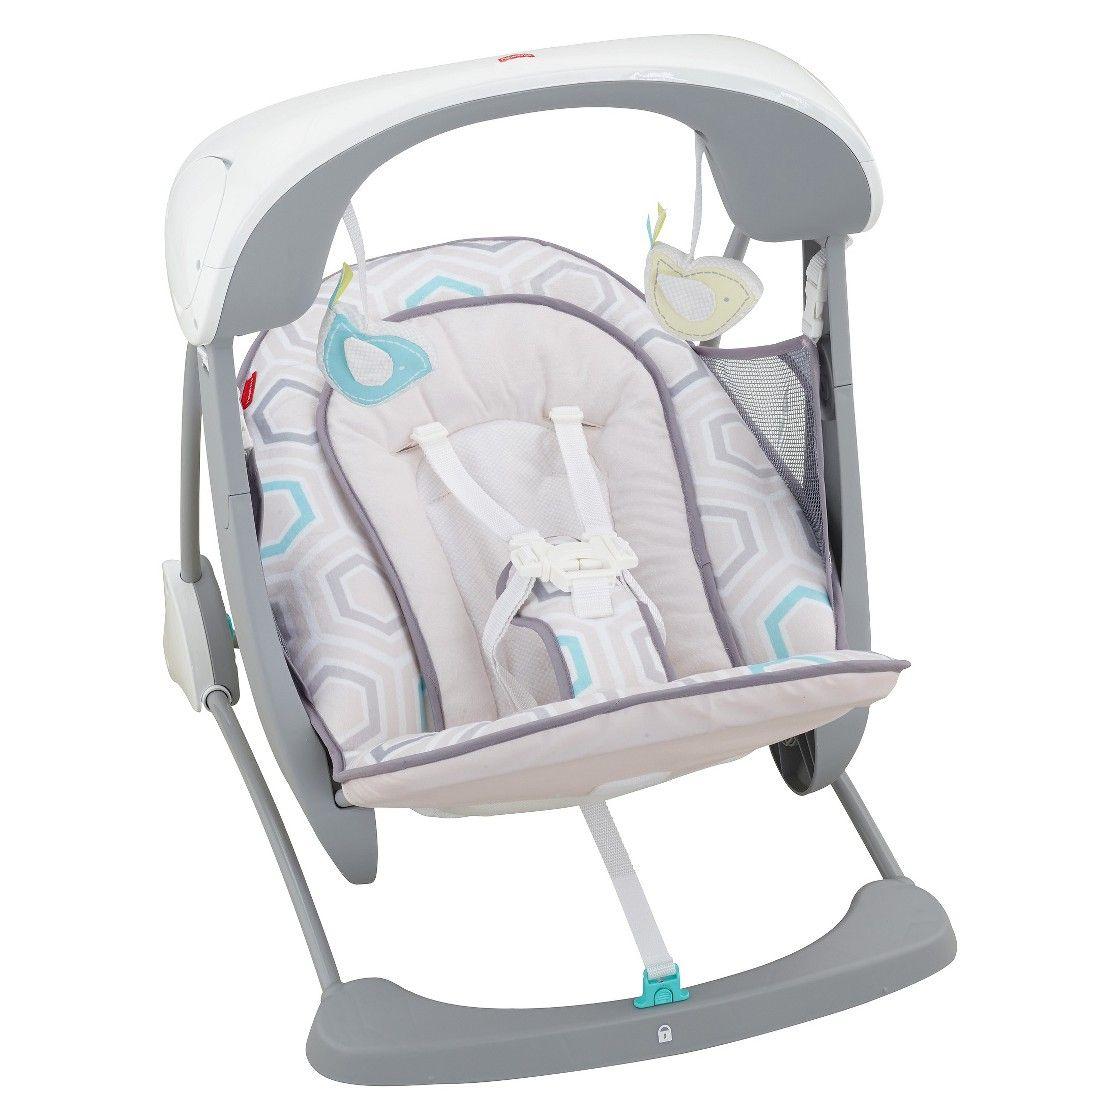 Fill blank? Fisher price swinging bassinet consider